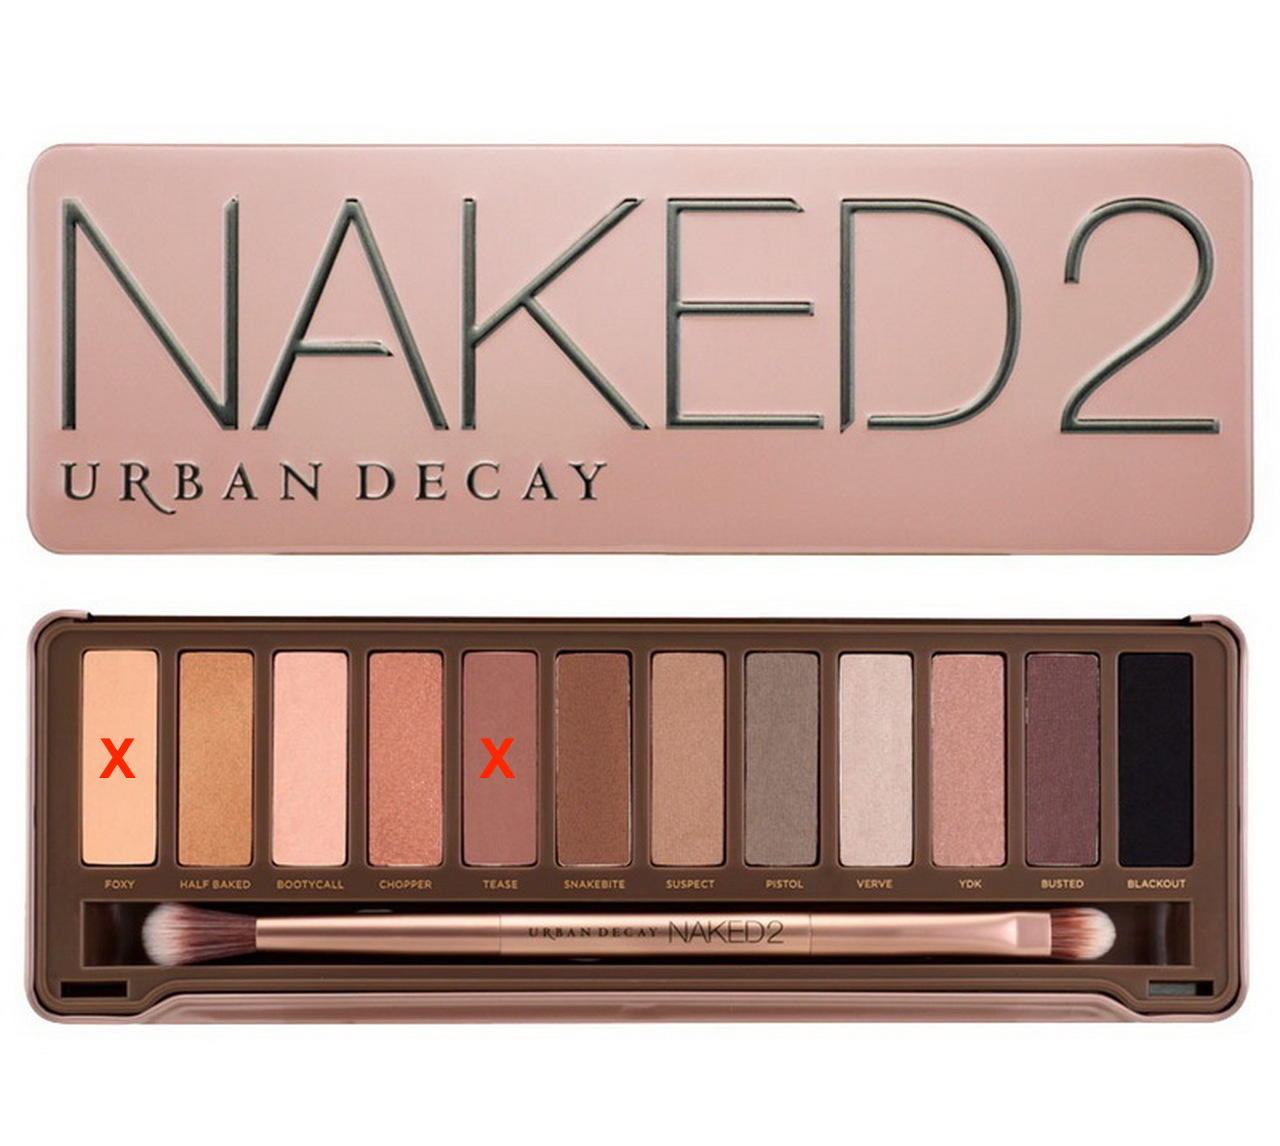 Urban Decay NAKED 2 Eyeshadow Palette (without foxy and tease)